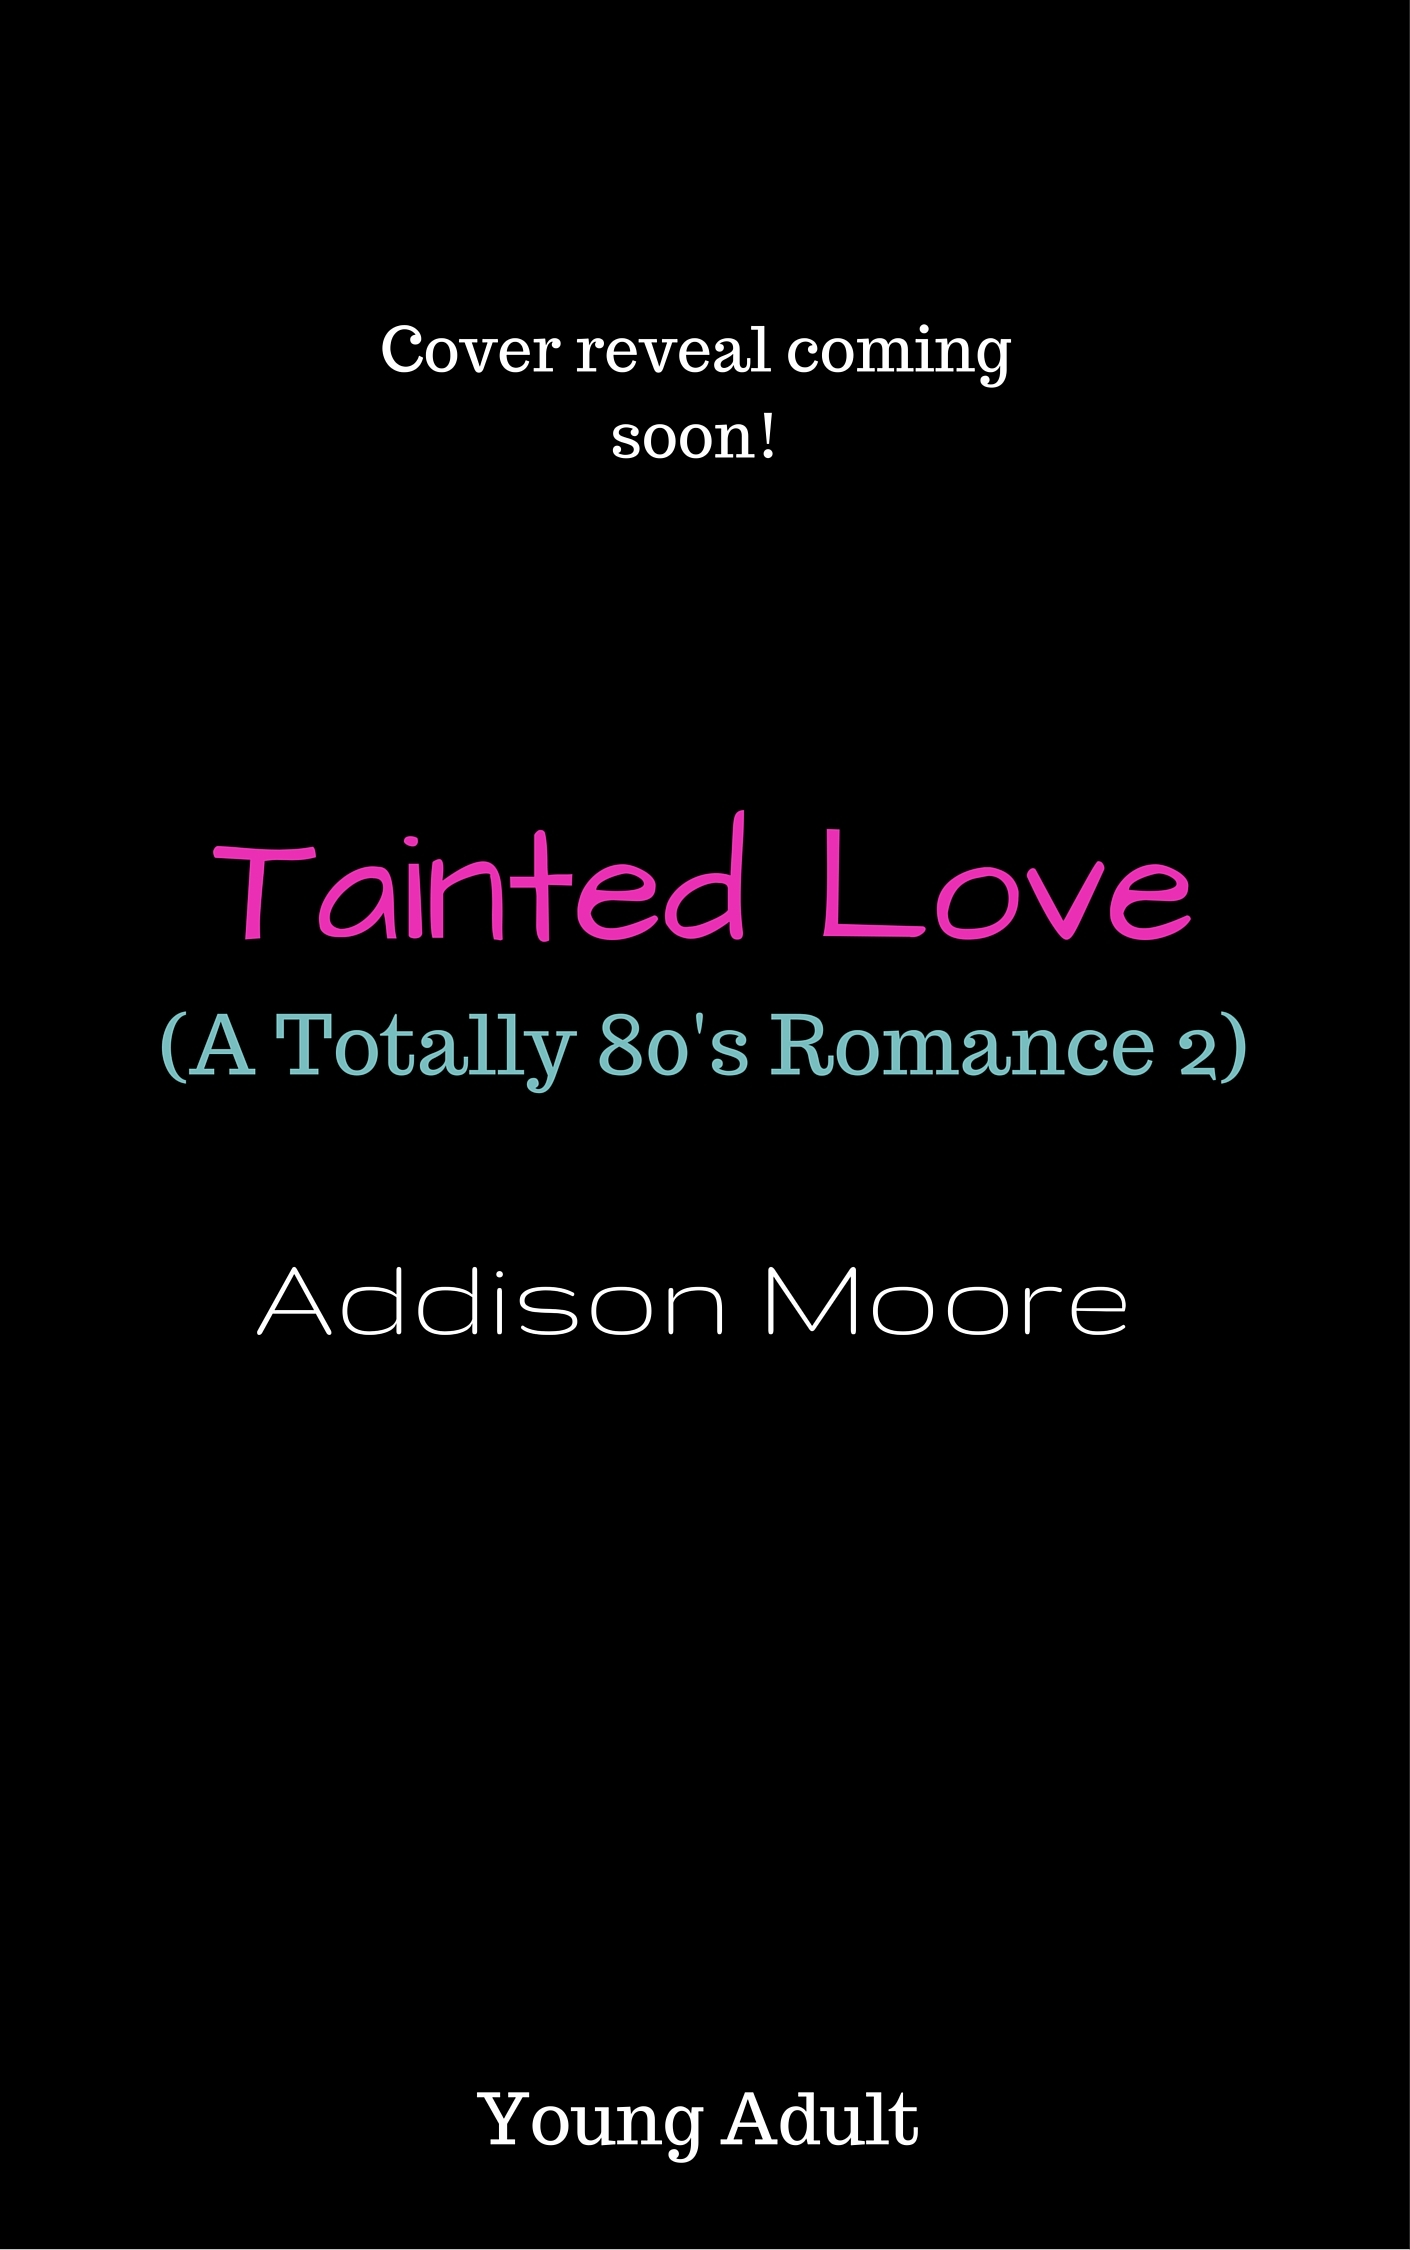 Tainted Love Addison Moore